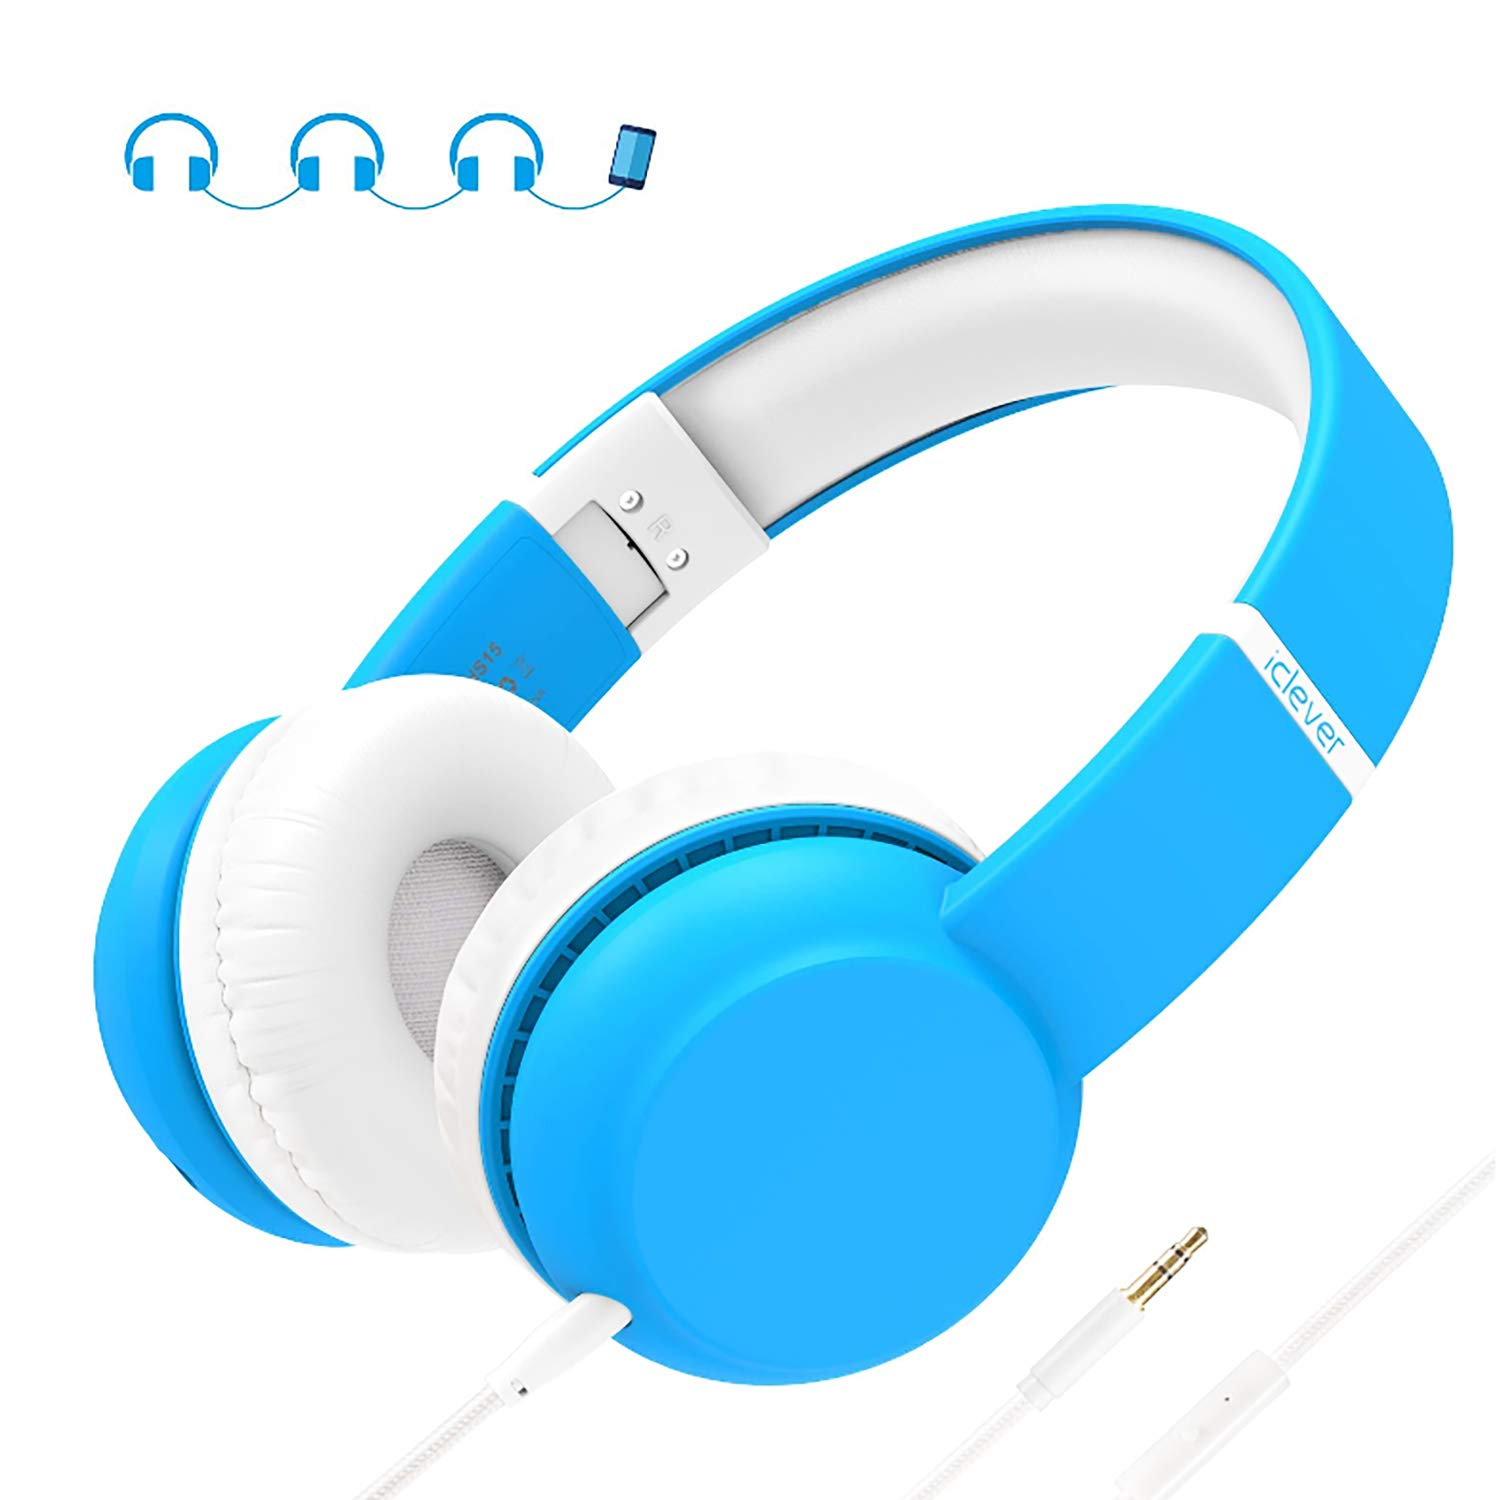 68825a0a6c4 iClever HS15 Kids Headphones - Wired Headphones for Kids Stereo Sound  Adjustable Metal Headband Microphone Foldable Tangle-Free Wires 94dB Volume  Limiting ...